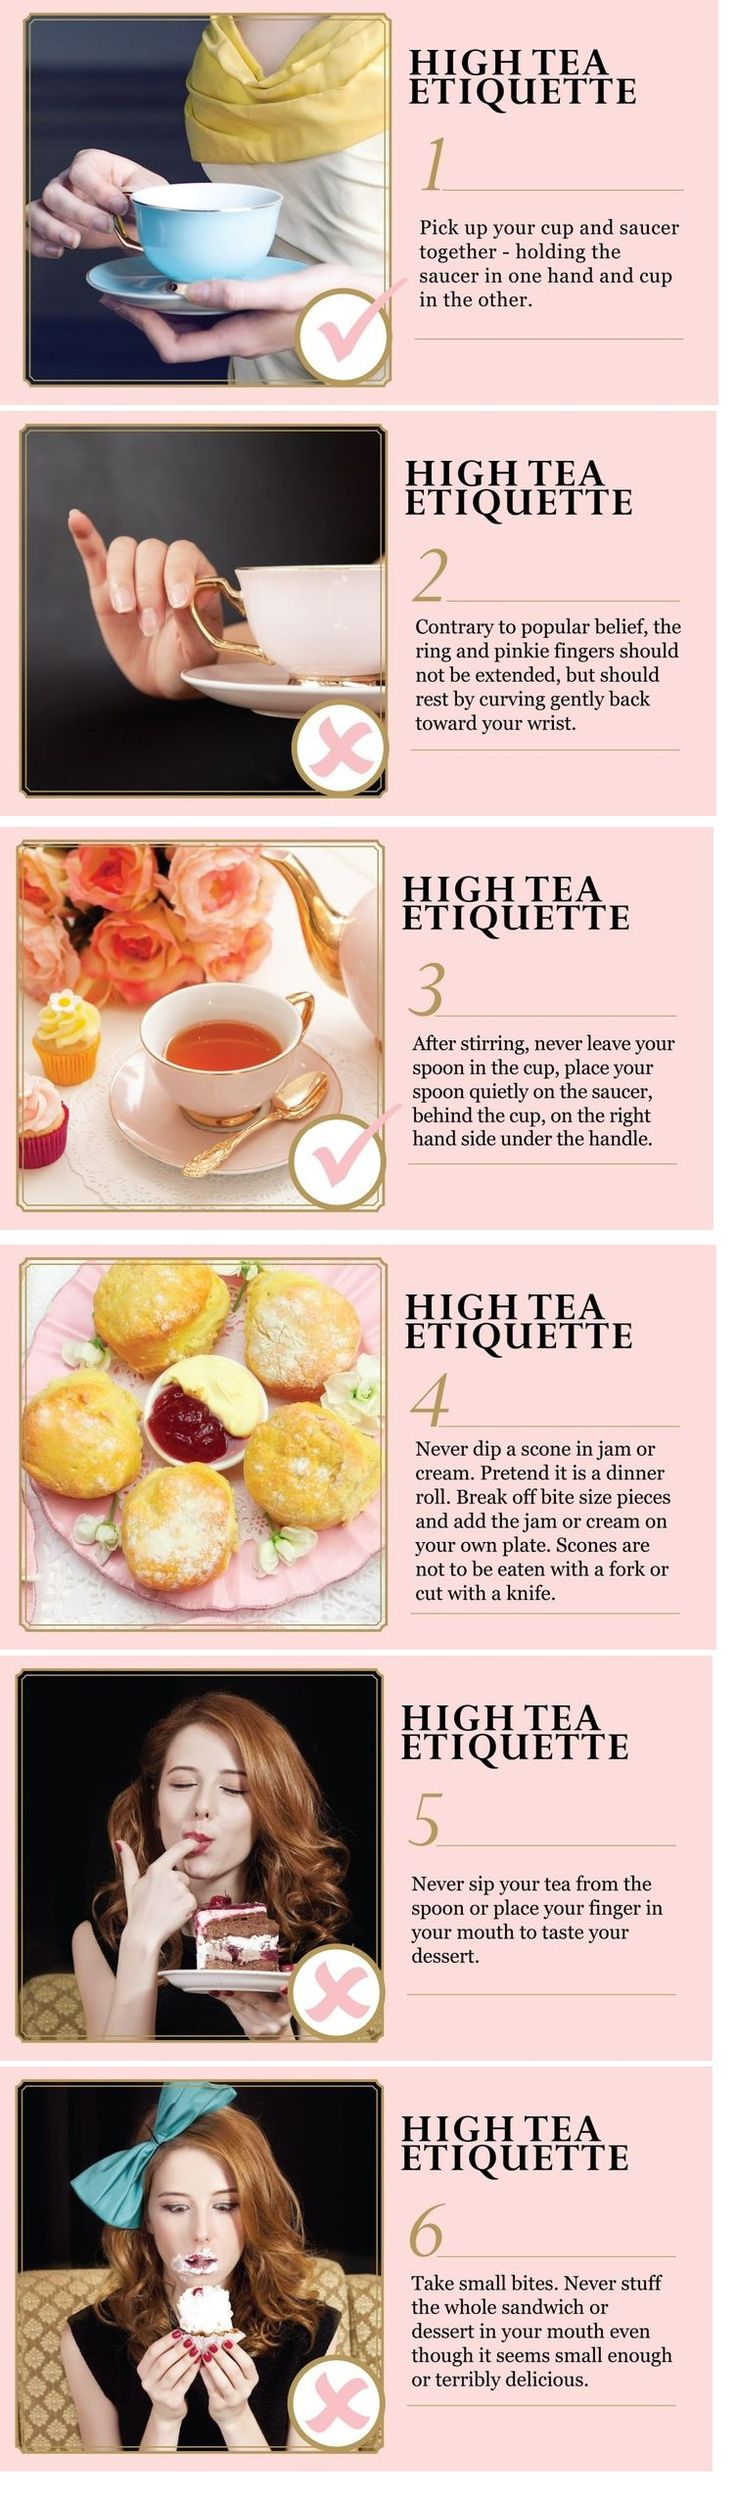 High Tea Manners - 6 rules #Ladylikelaws .... Whoops. Ok, pick up the saucer. Tea etiquettes :)